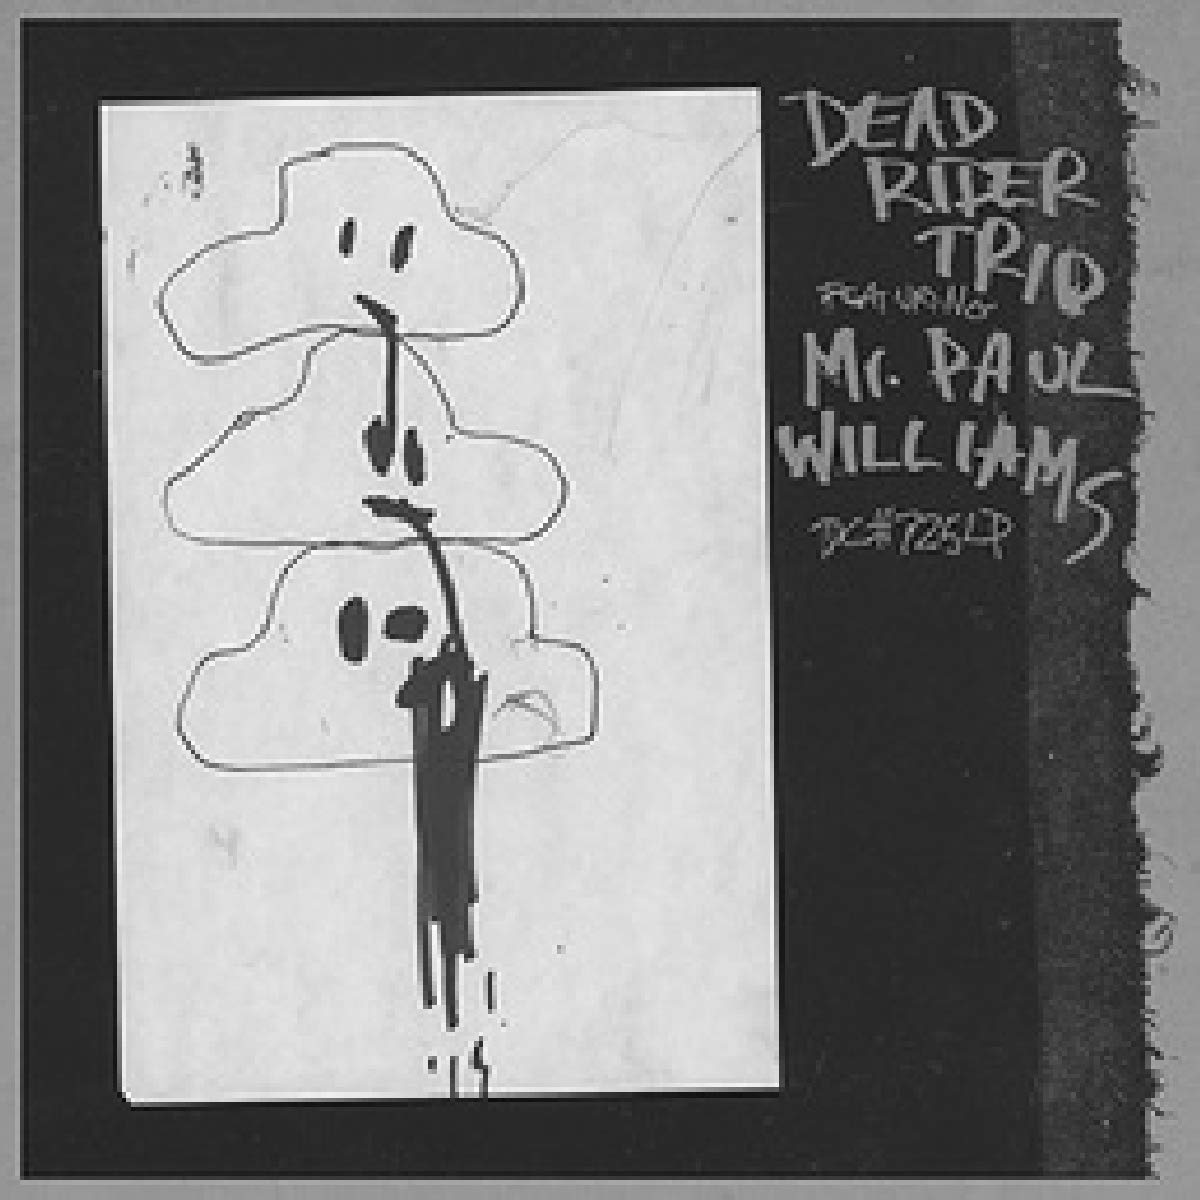 Vinilo : DEAD RIDER TRIO FEATURING MR. PAUL WILLIAMS - Dead Rider Trio (LP Vinyl)